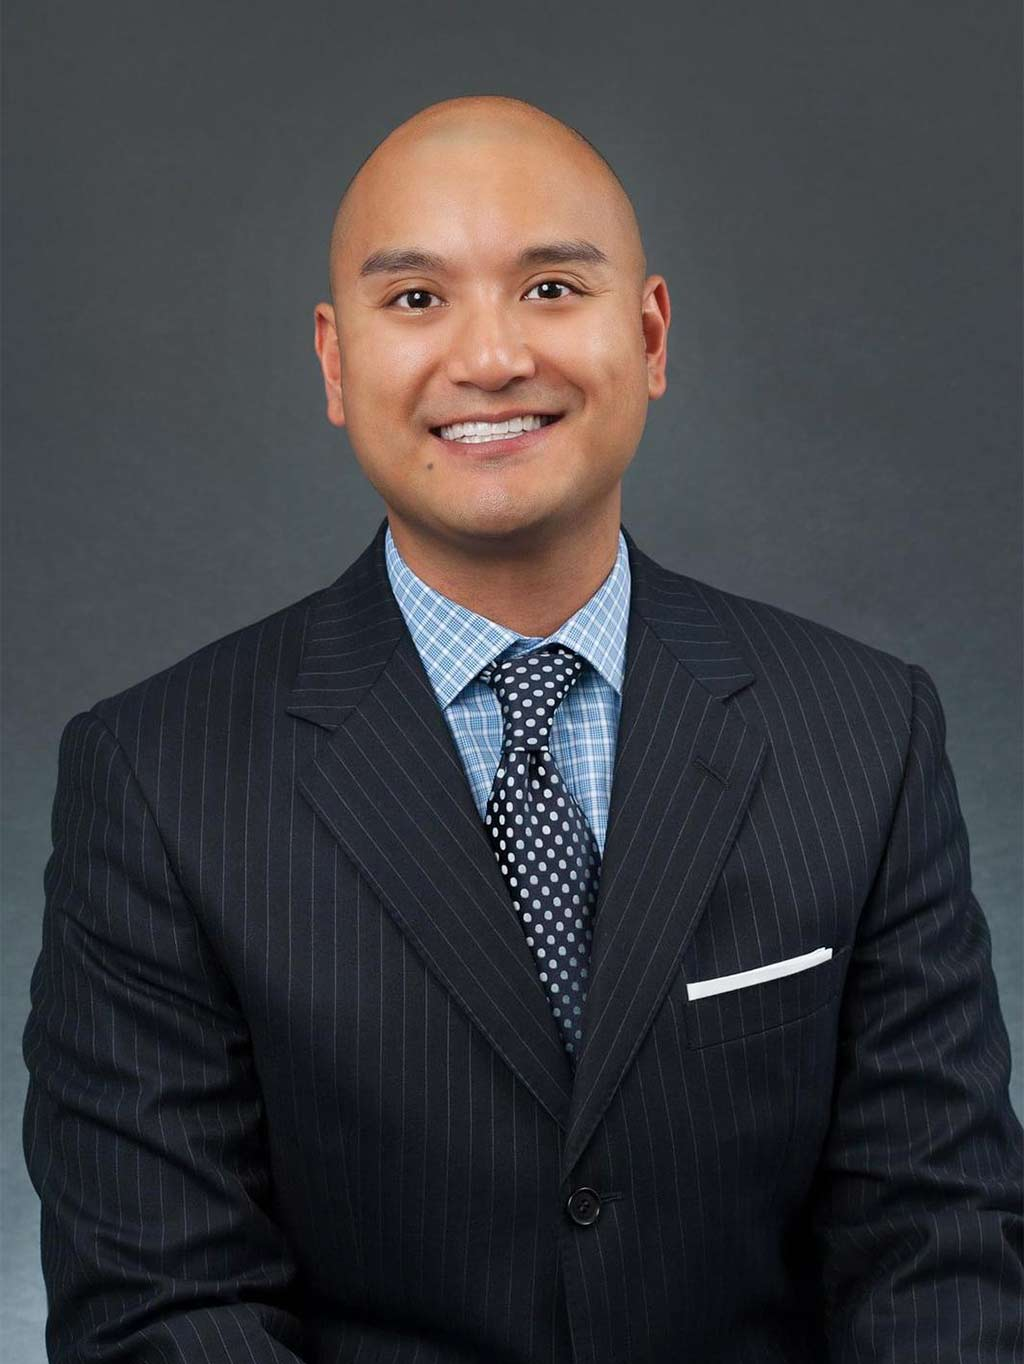 Andrew Pelimiano, Operations Manager, North Power Mortgages